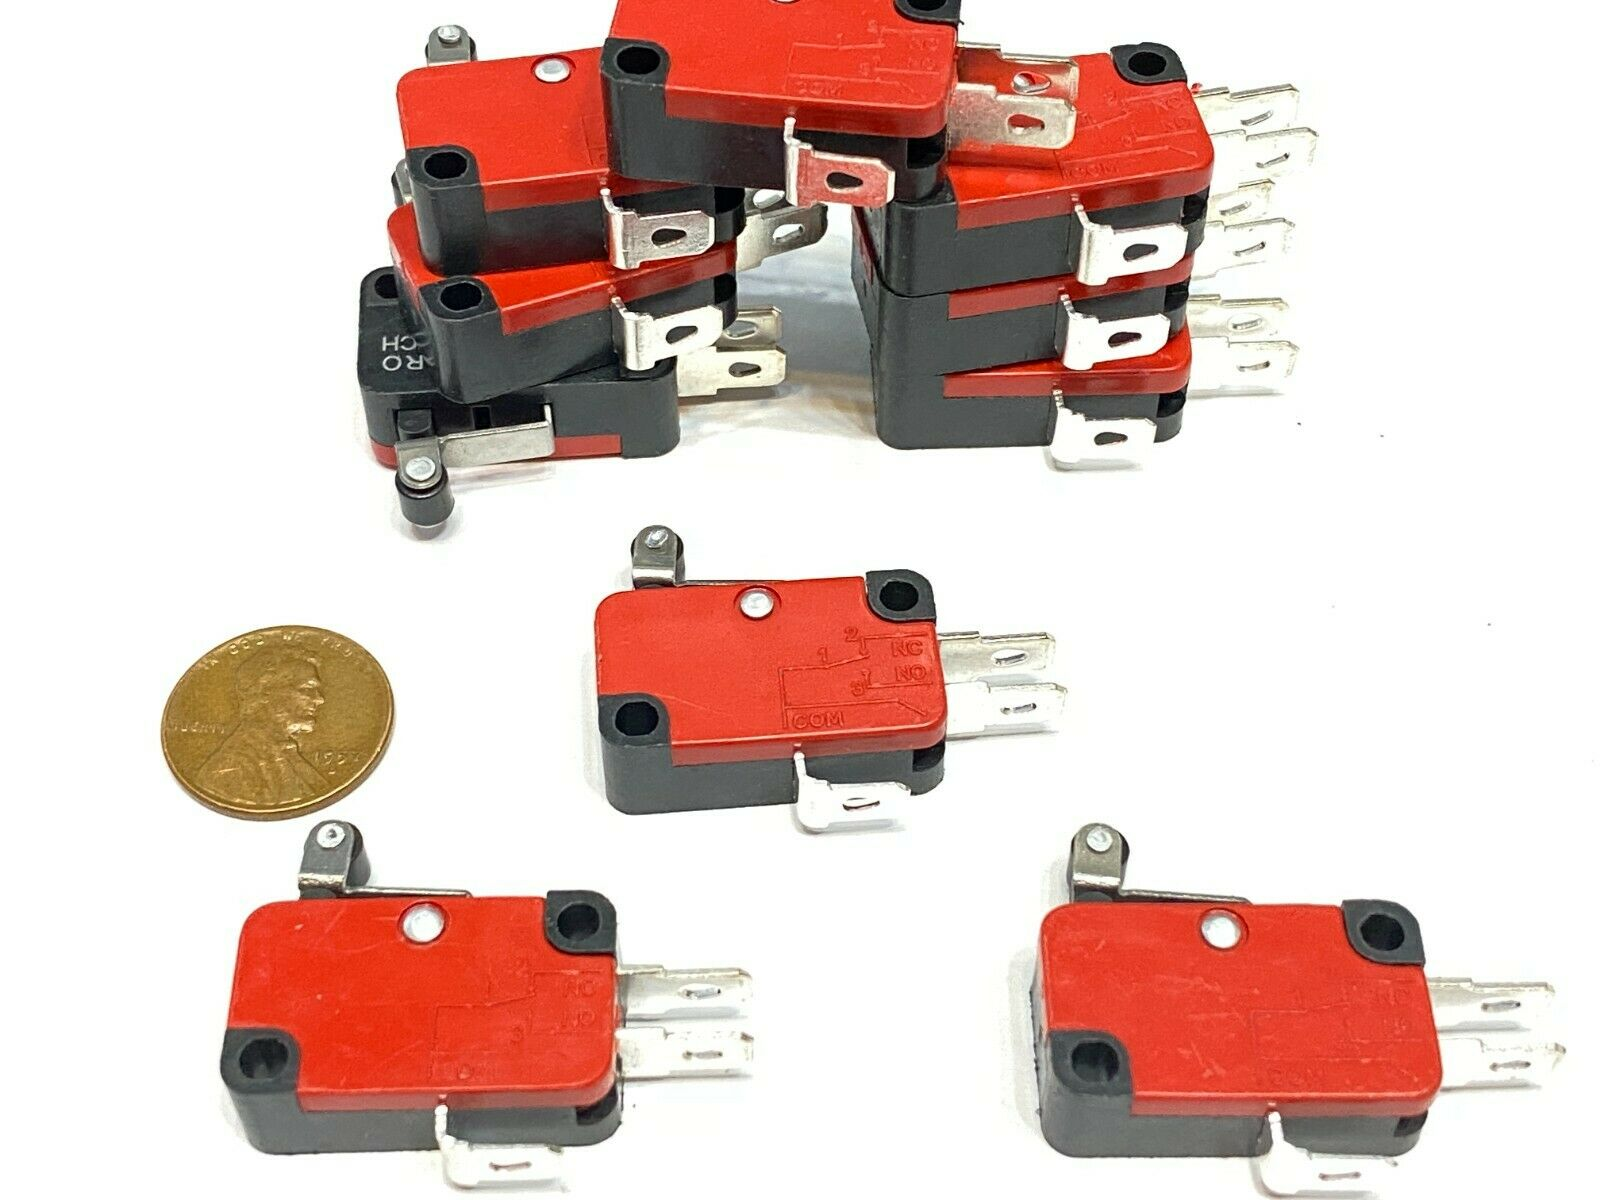 10 Pieces Limit Micro roller Switch V-155-1C25 SPDT Snap Action Momentary B1